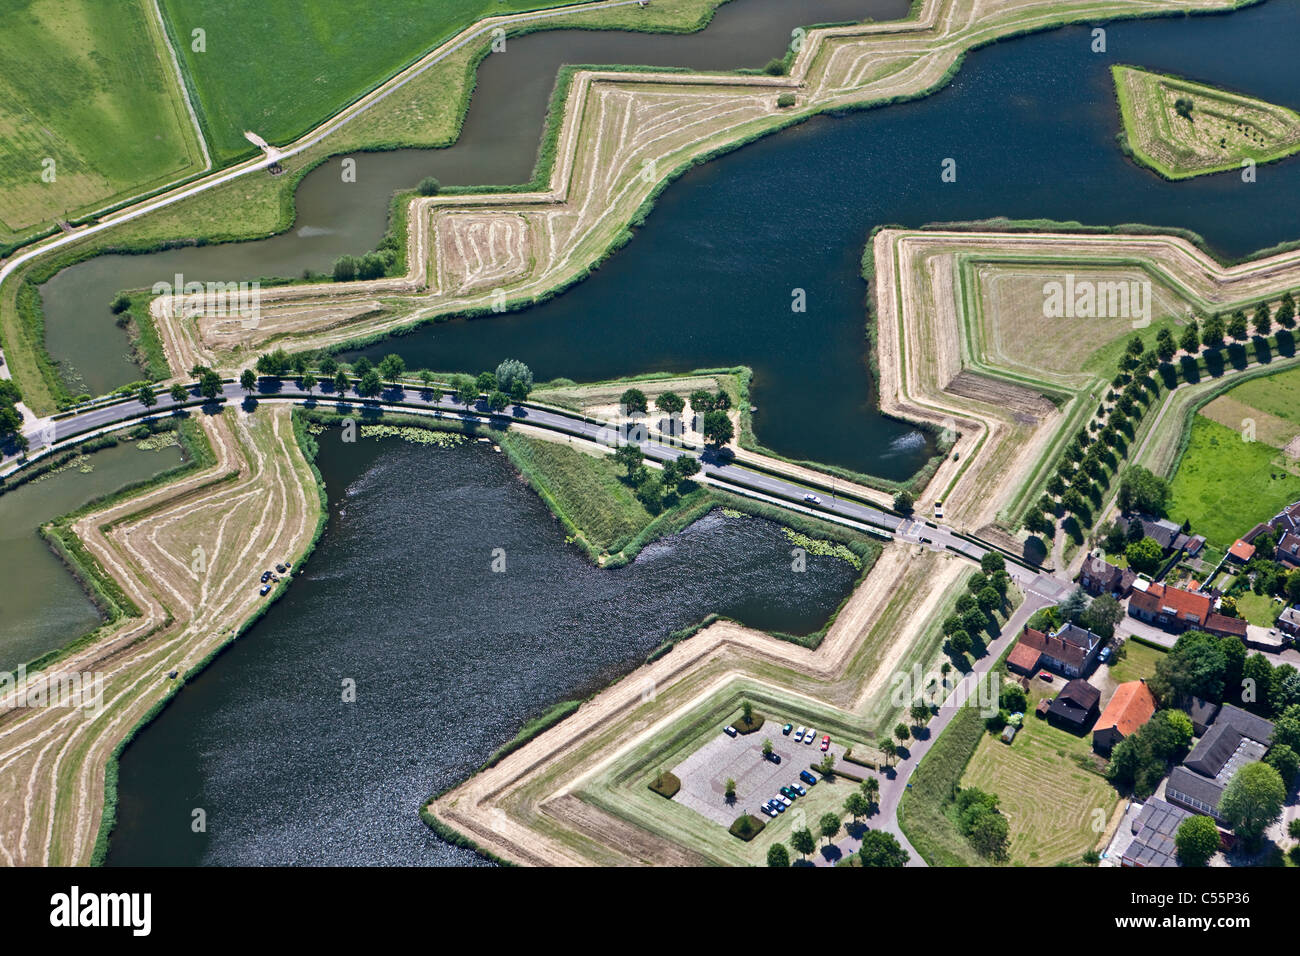 The Netherlands, The fortified, star shaped city of Heusden, Aerial. - Stock Image